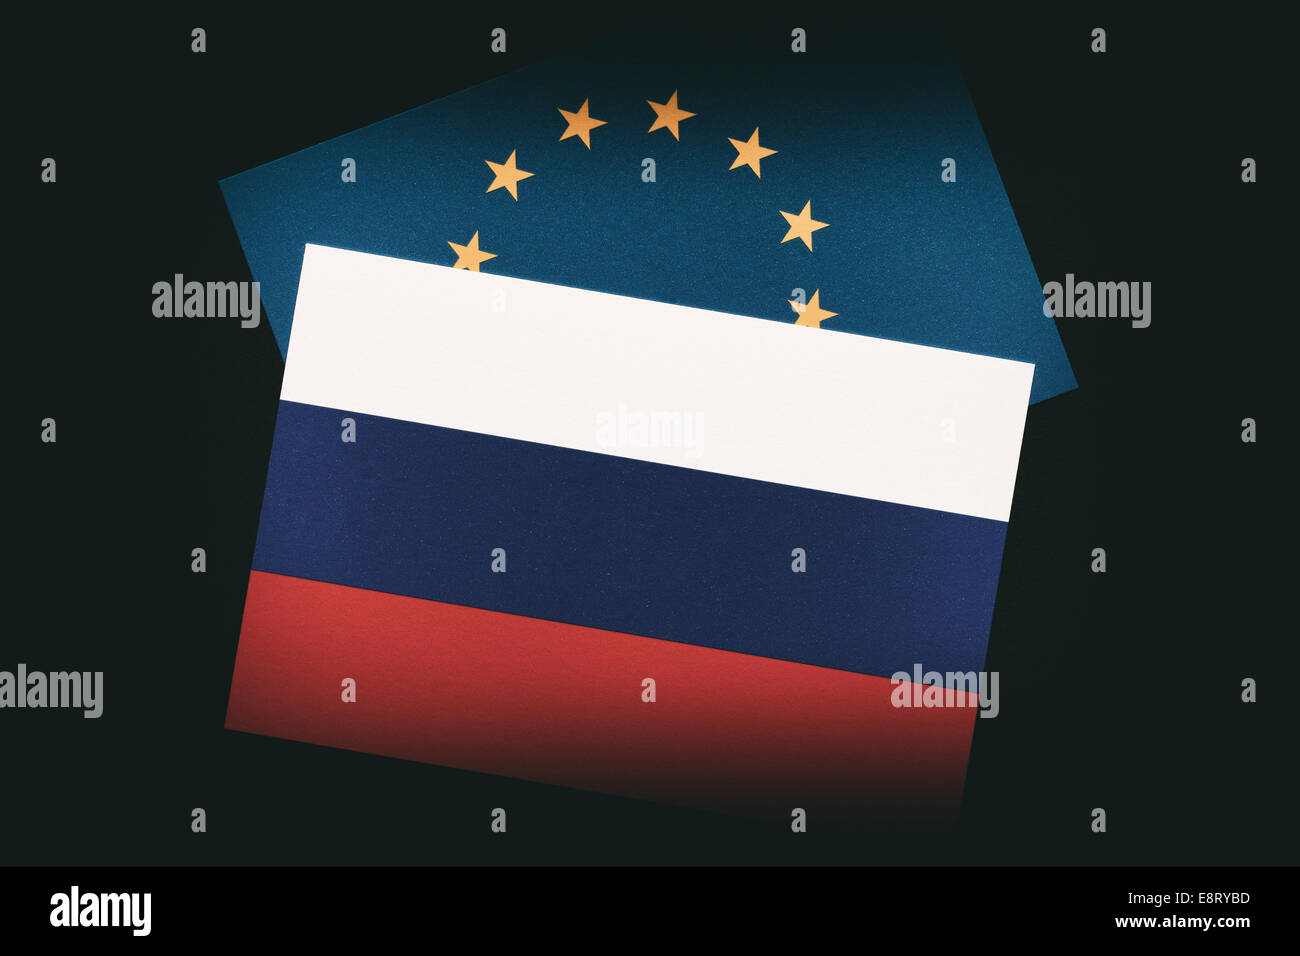 Russian and European Union flags. Black Background. - Stock Image